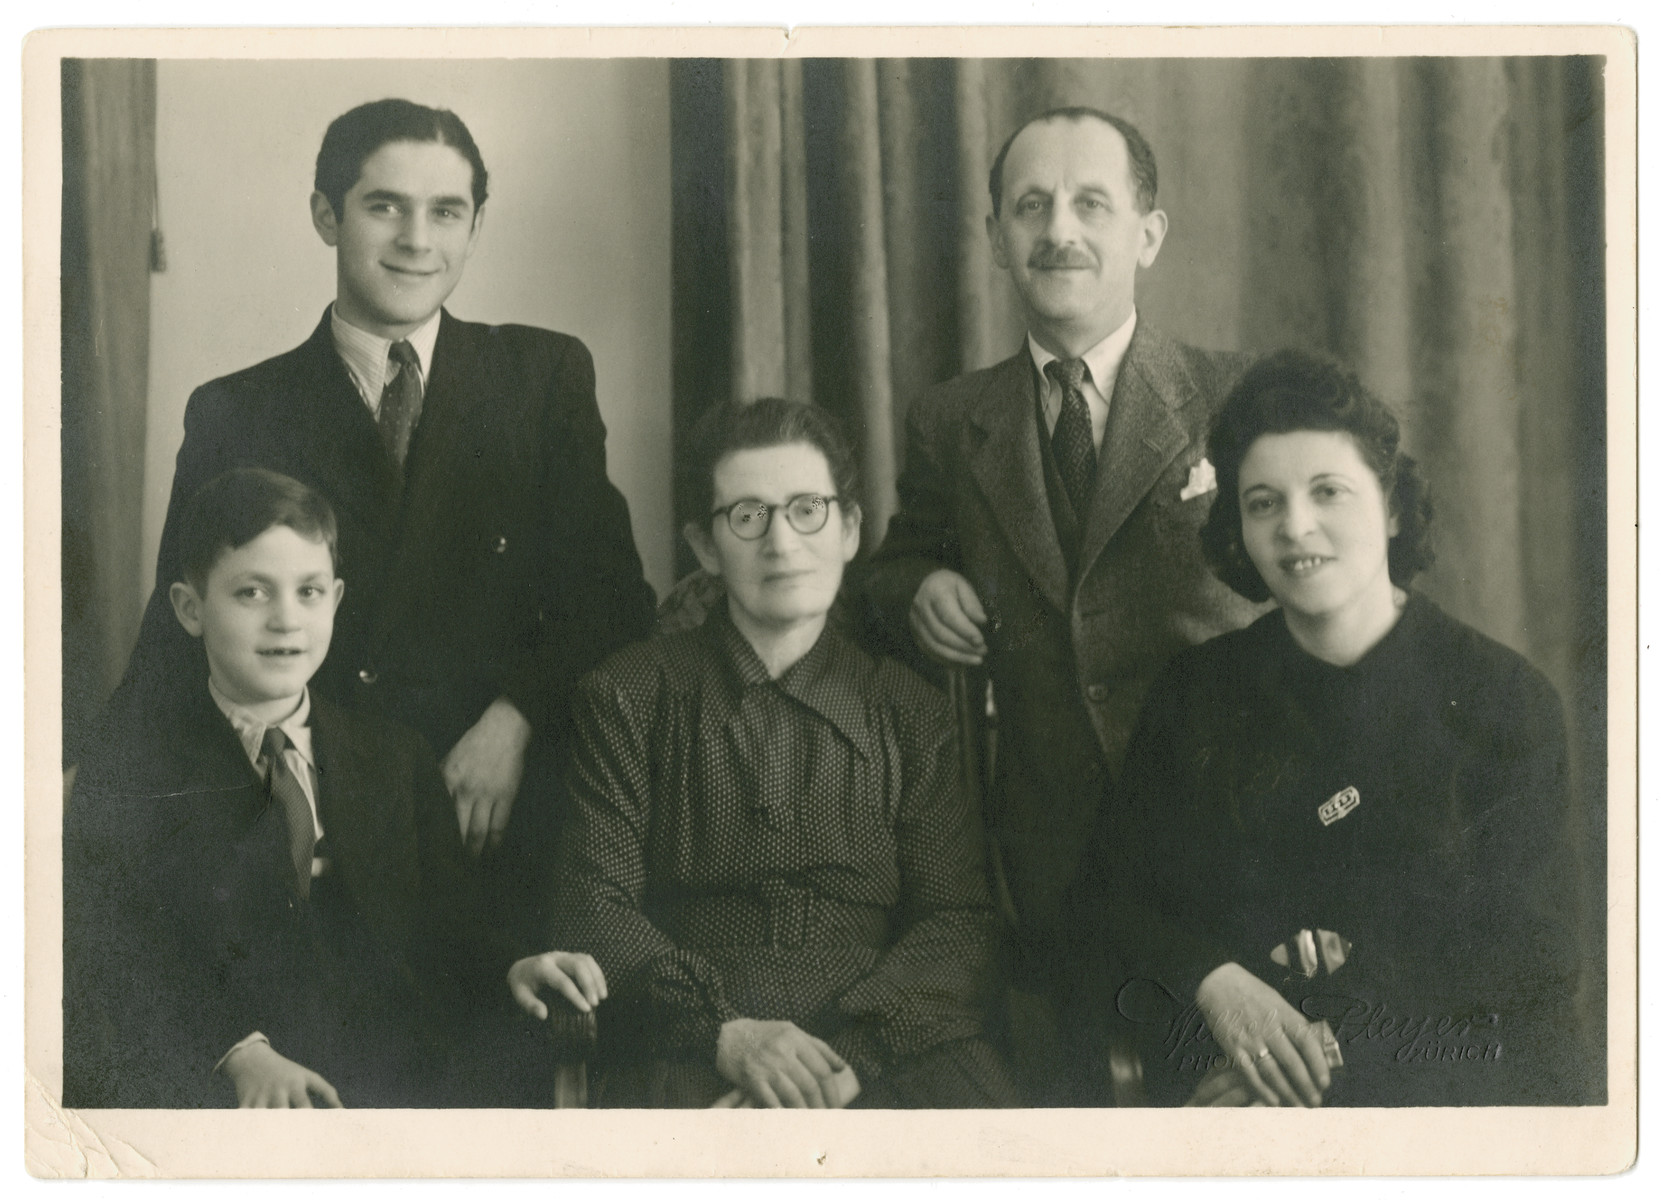 Studio portrait of an extended family of Jewish refugees in Switzerland.    Seated left to to right are Fred Gross, Rachel Reichert Kempinski, and her daughter Nacha Gross.  Standing are Leo and Max Gross.